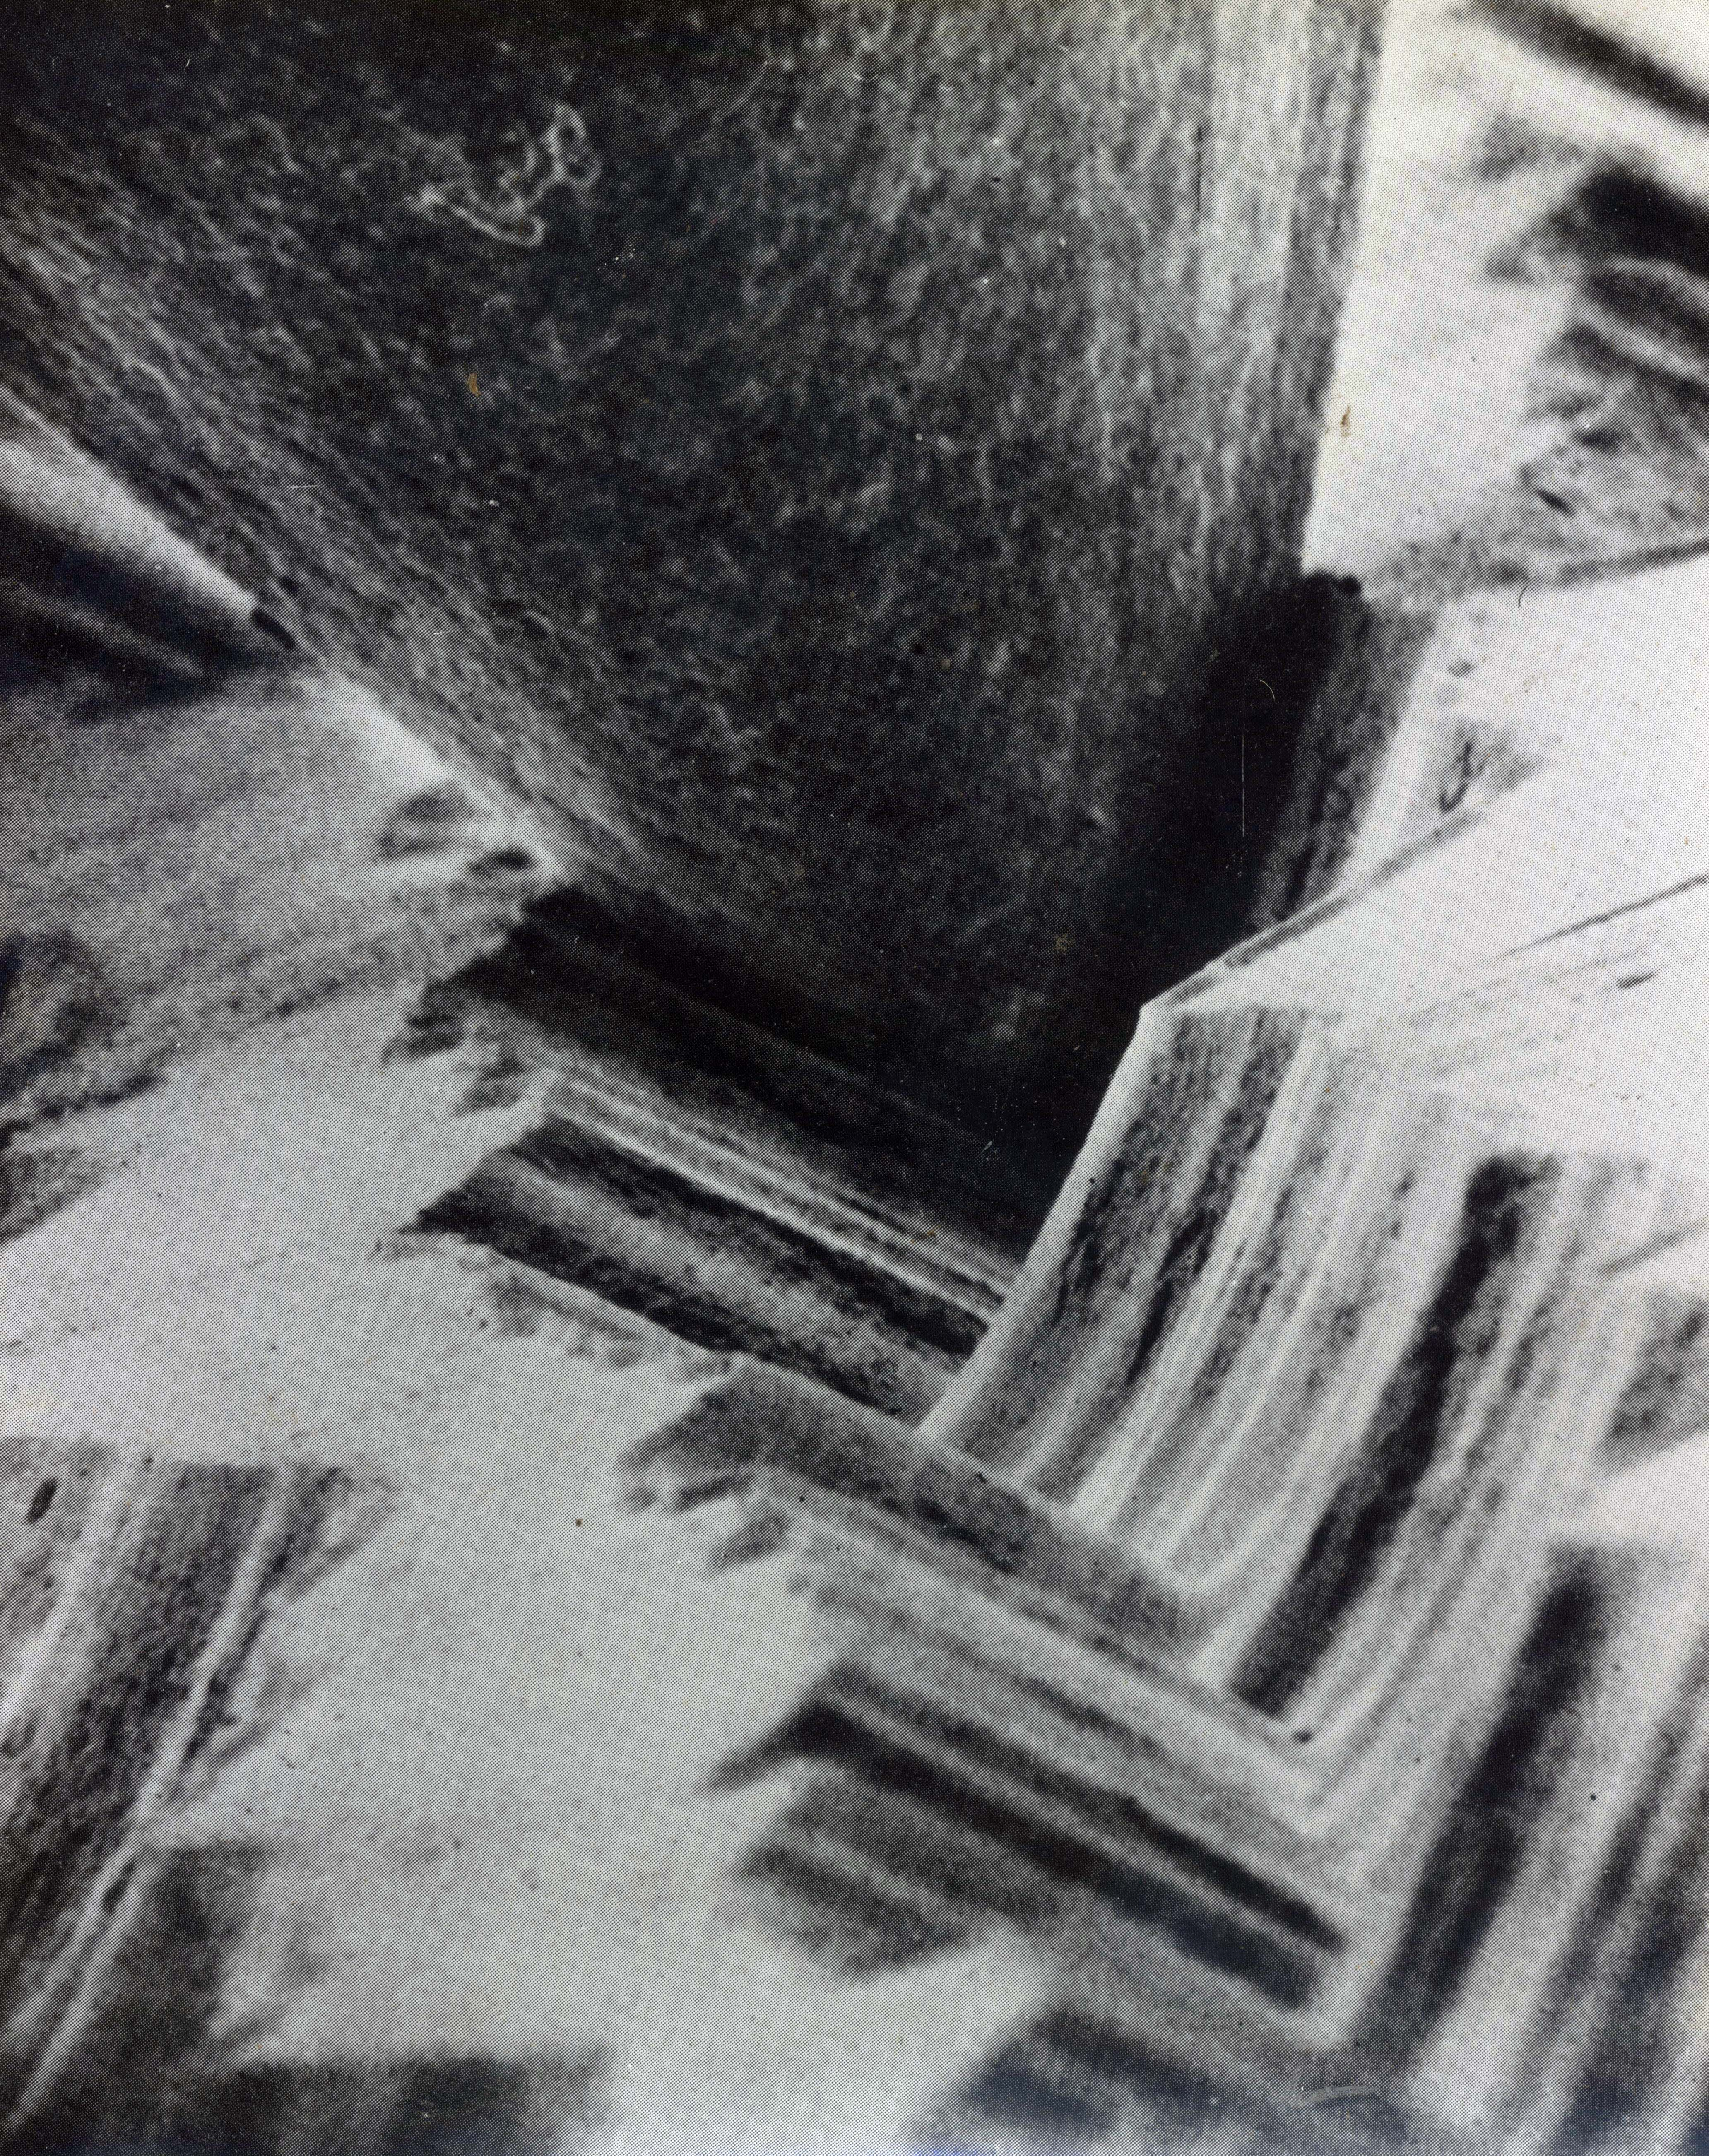 Microscopic View Of A Needle Playing On A Vinyl Record